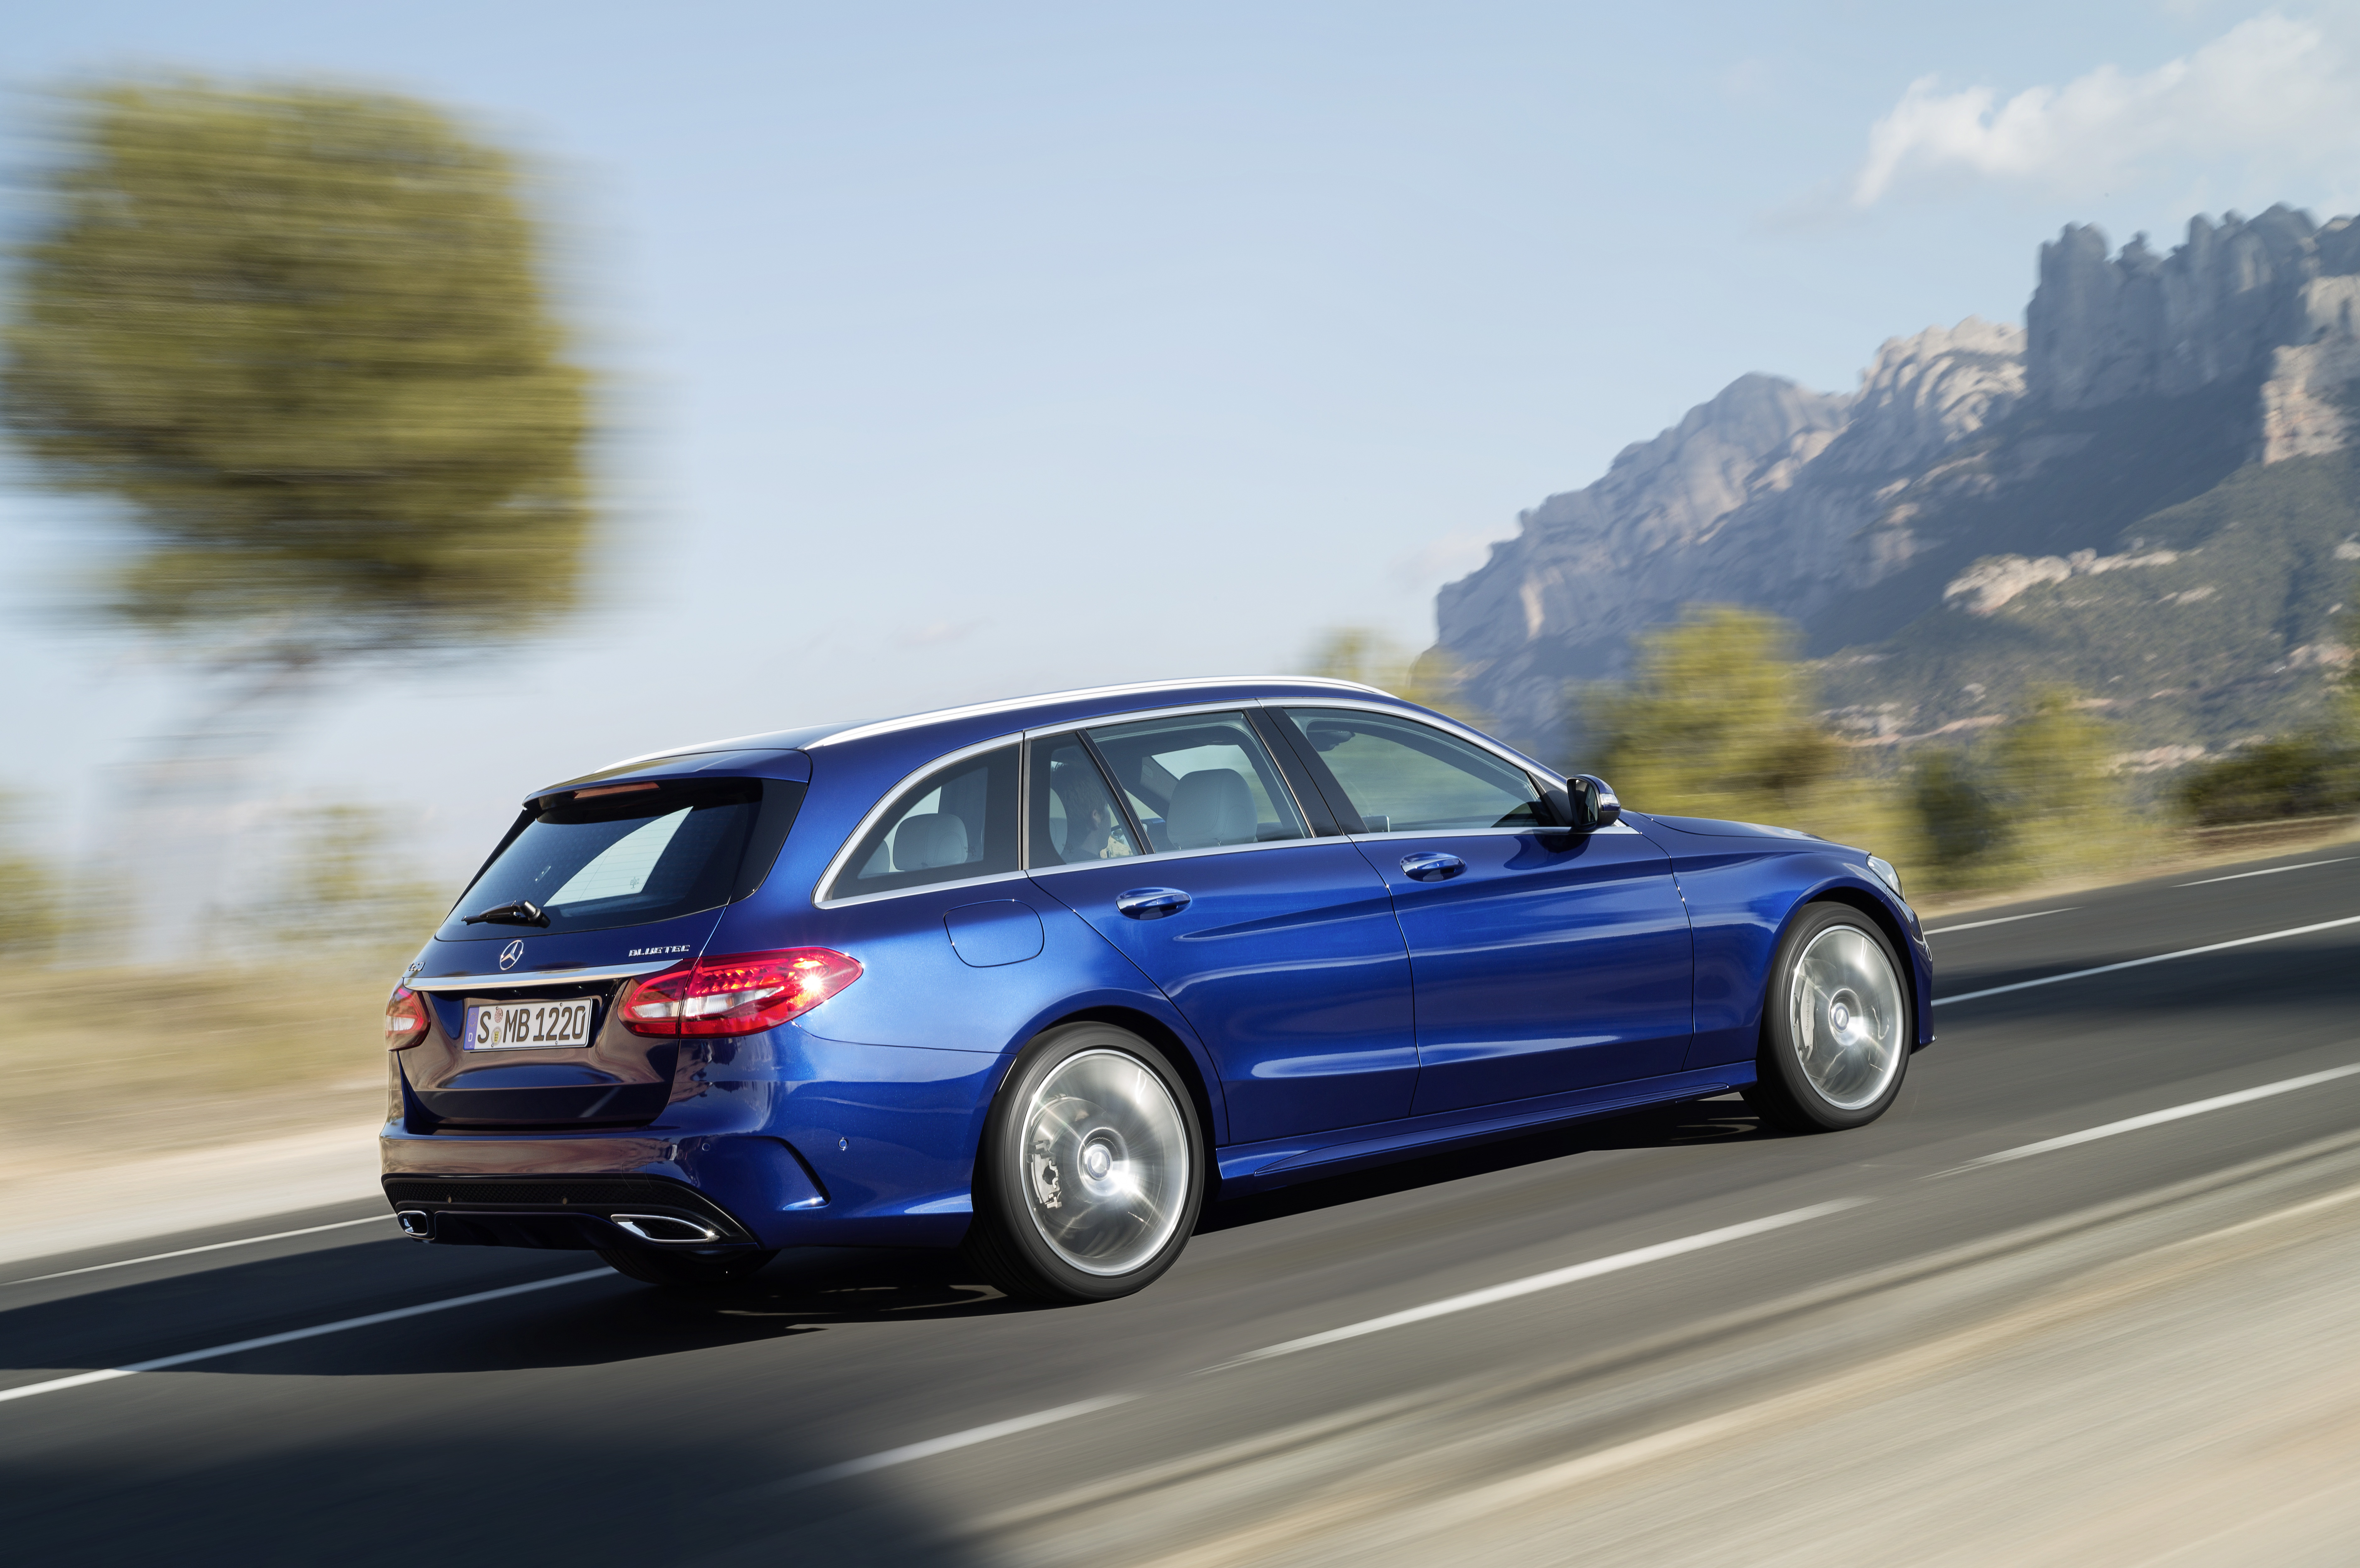 Nuova Mercedes-Benz Classe C Station Wagon